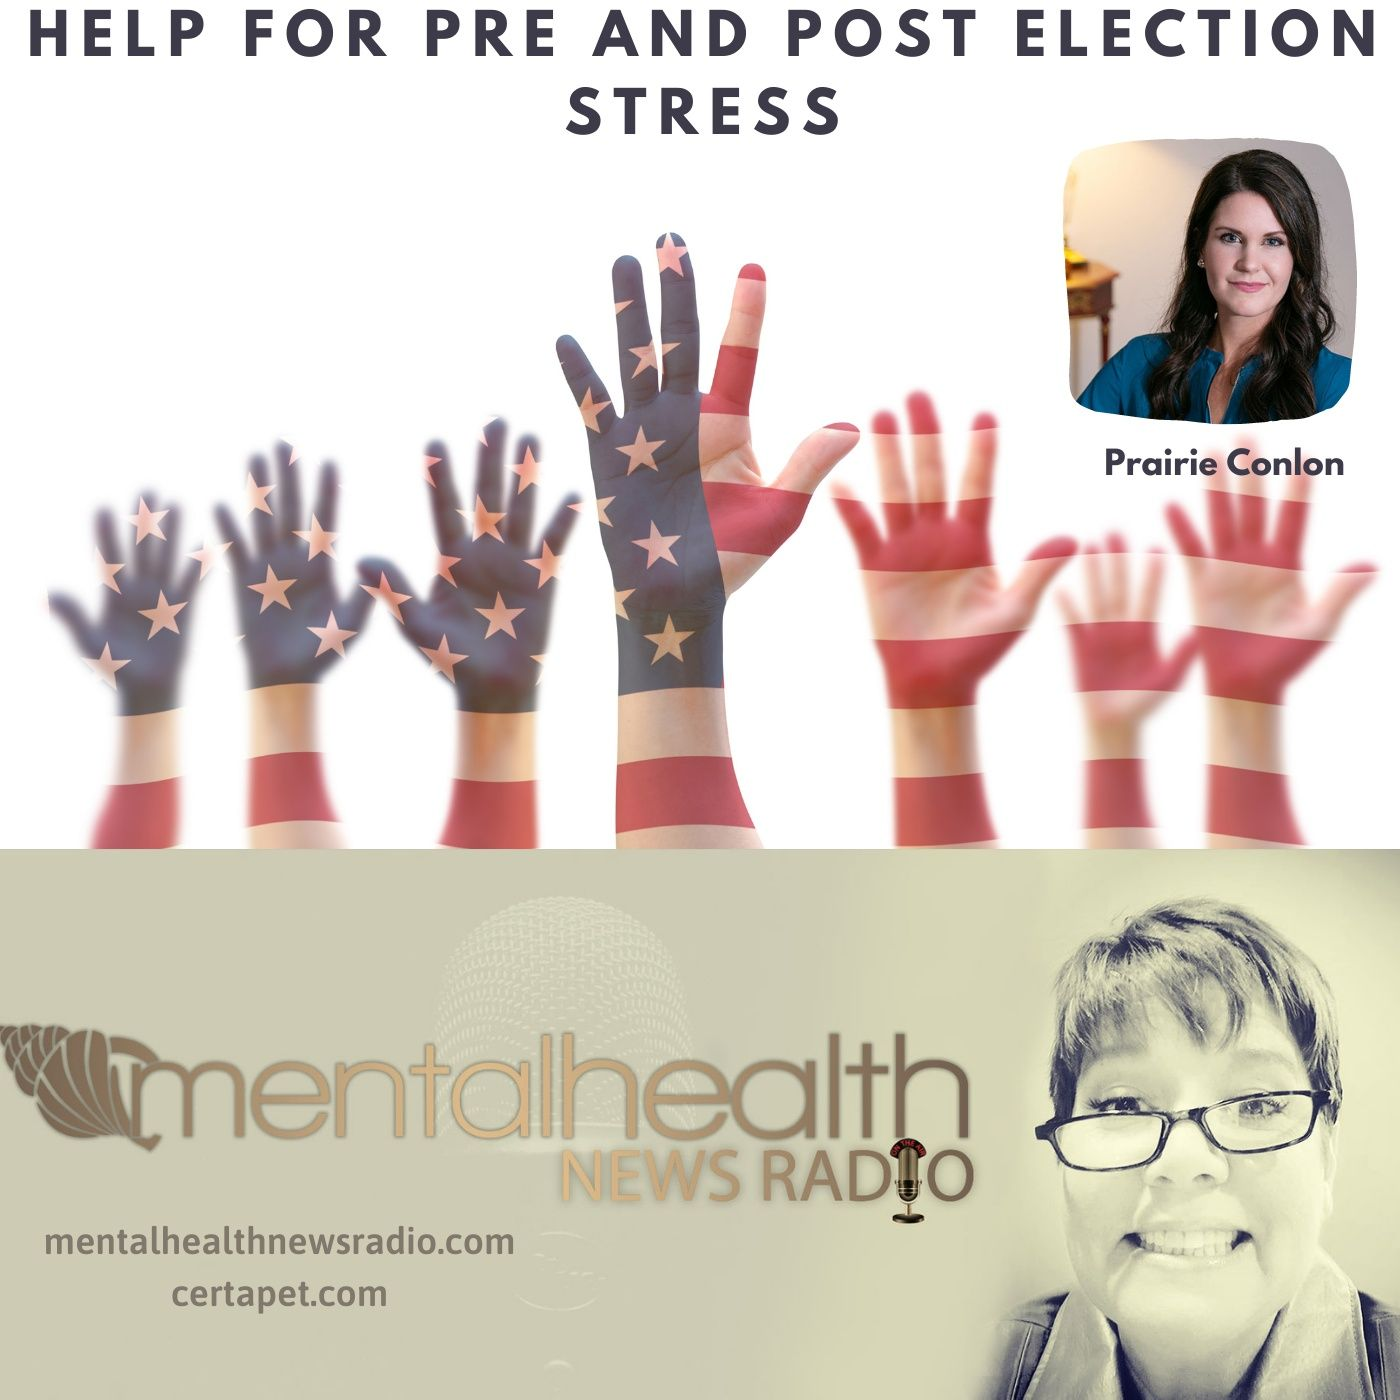 Mental Health News Radio - Help for Pre and Post Election Stress with Prairie Conlon